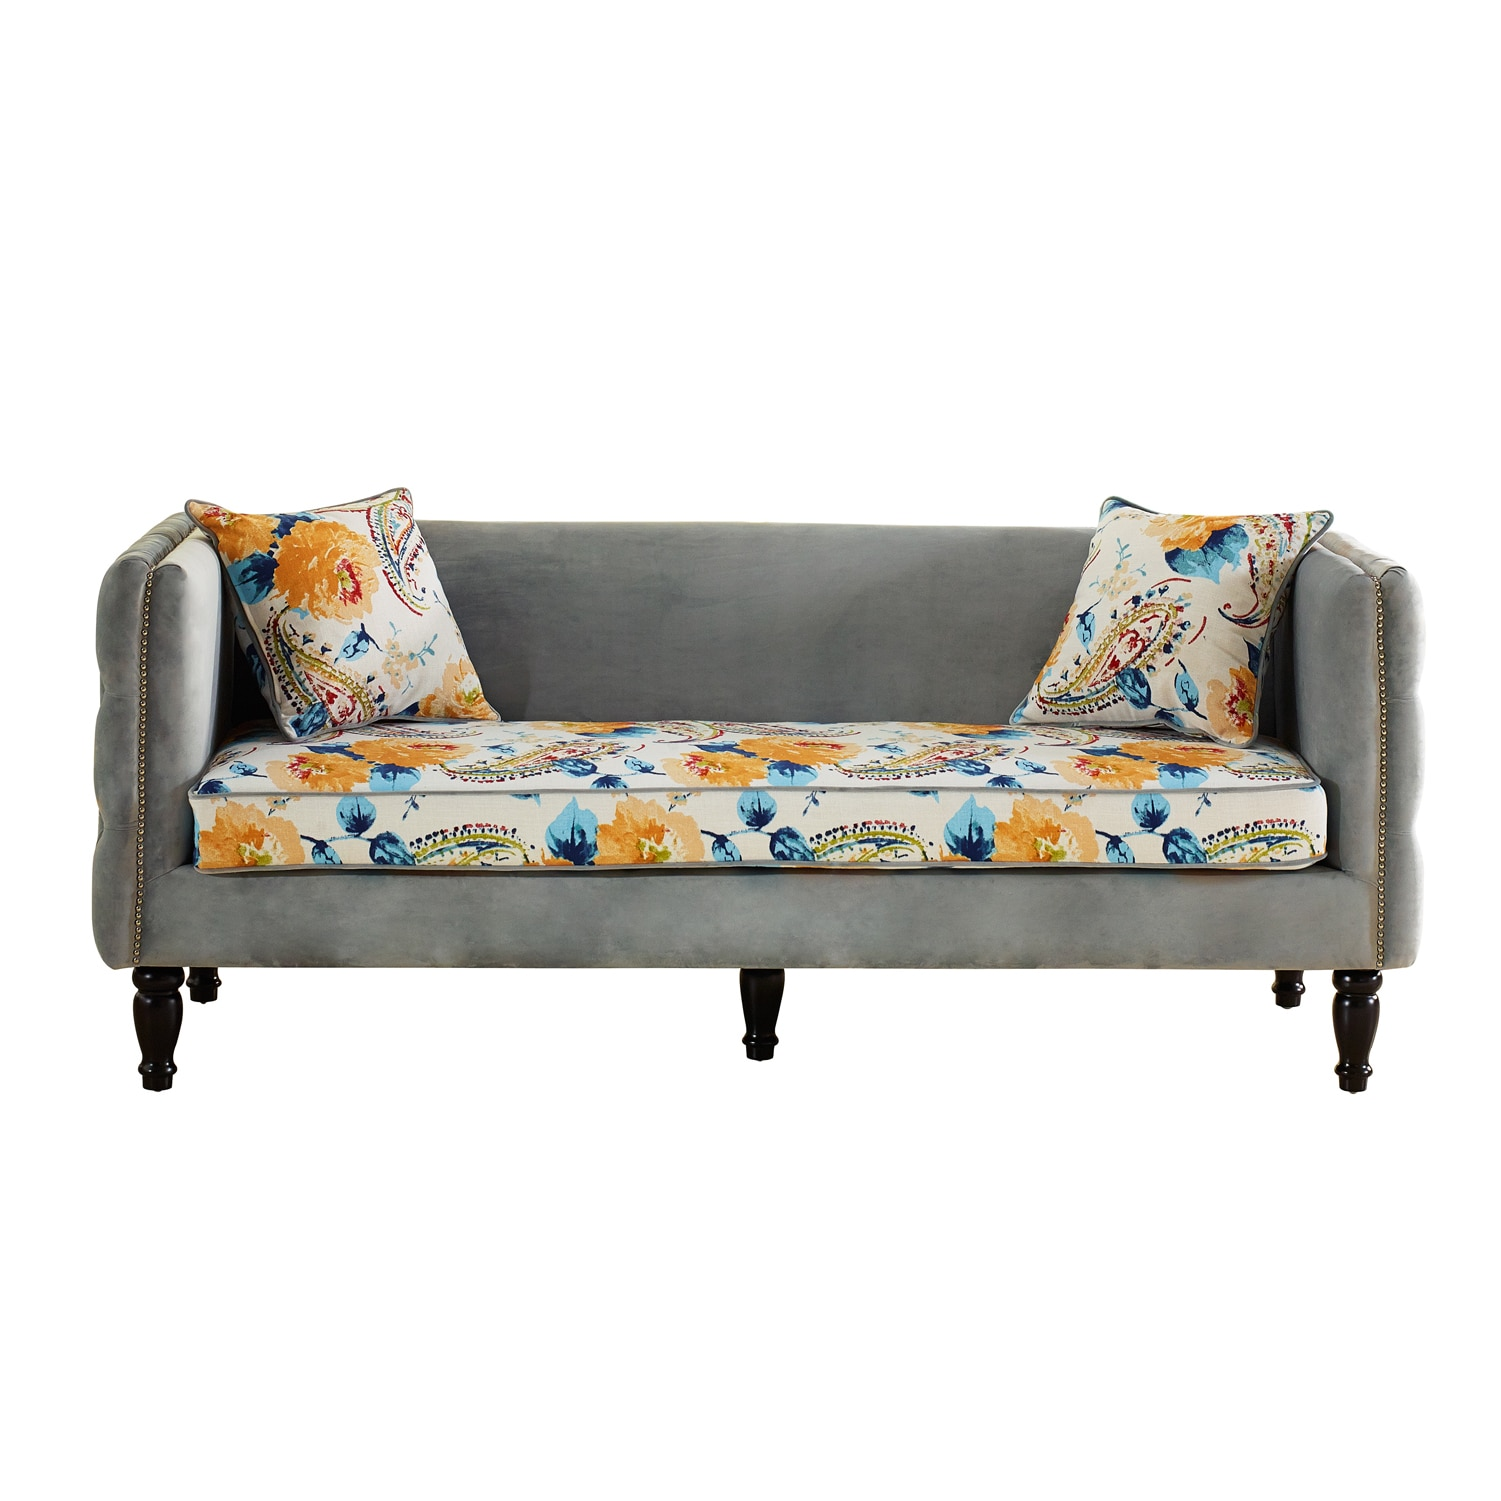 Shop Lily French Inspired Grey Velvet And Calico Upholstered Loveseat And  Sofa Set   Free Shipping Today   Overstock.com   10167184